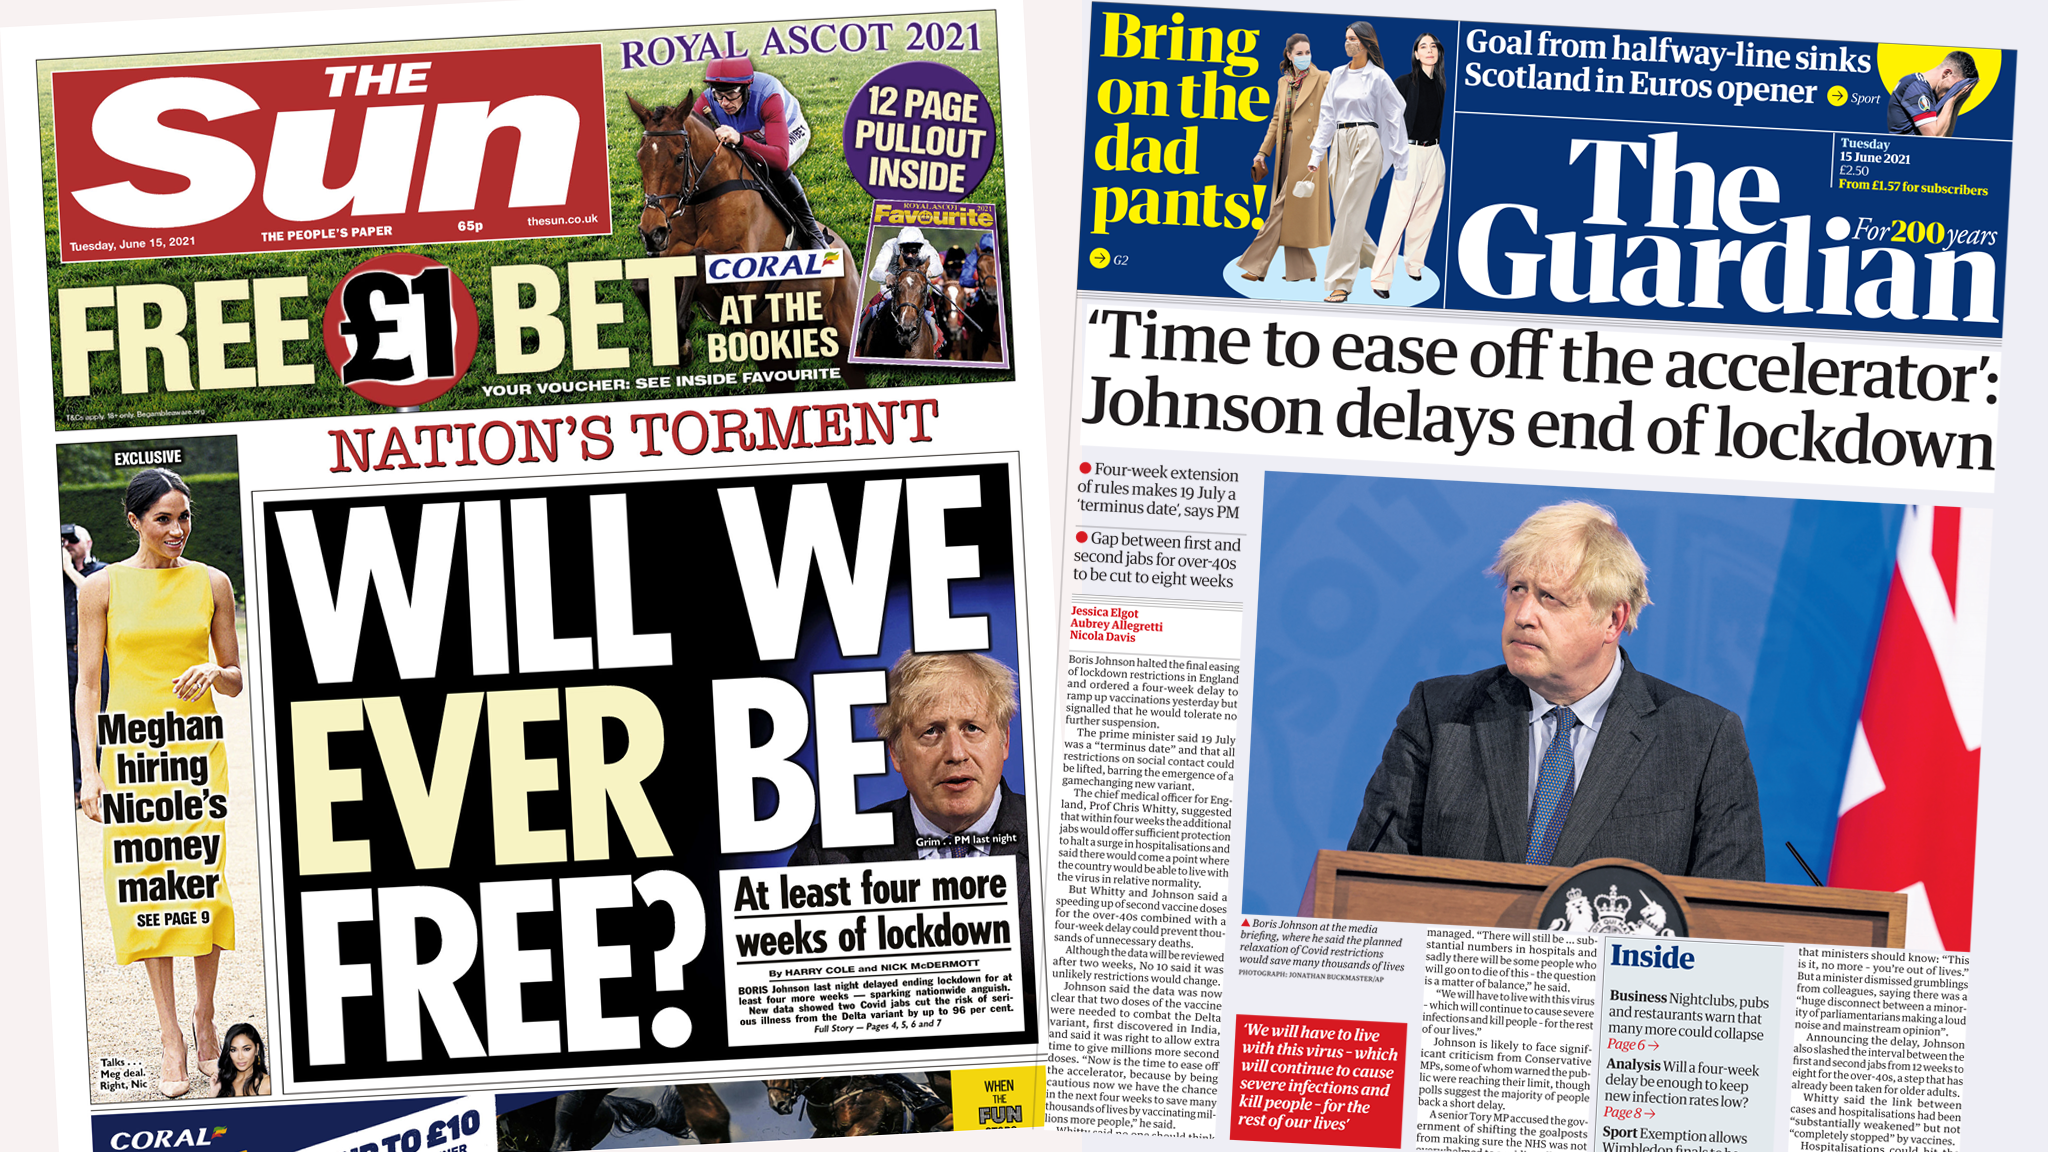 The Sun and the Guardian front page